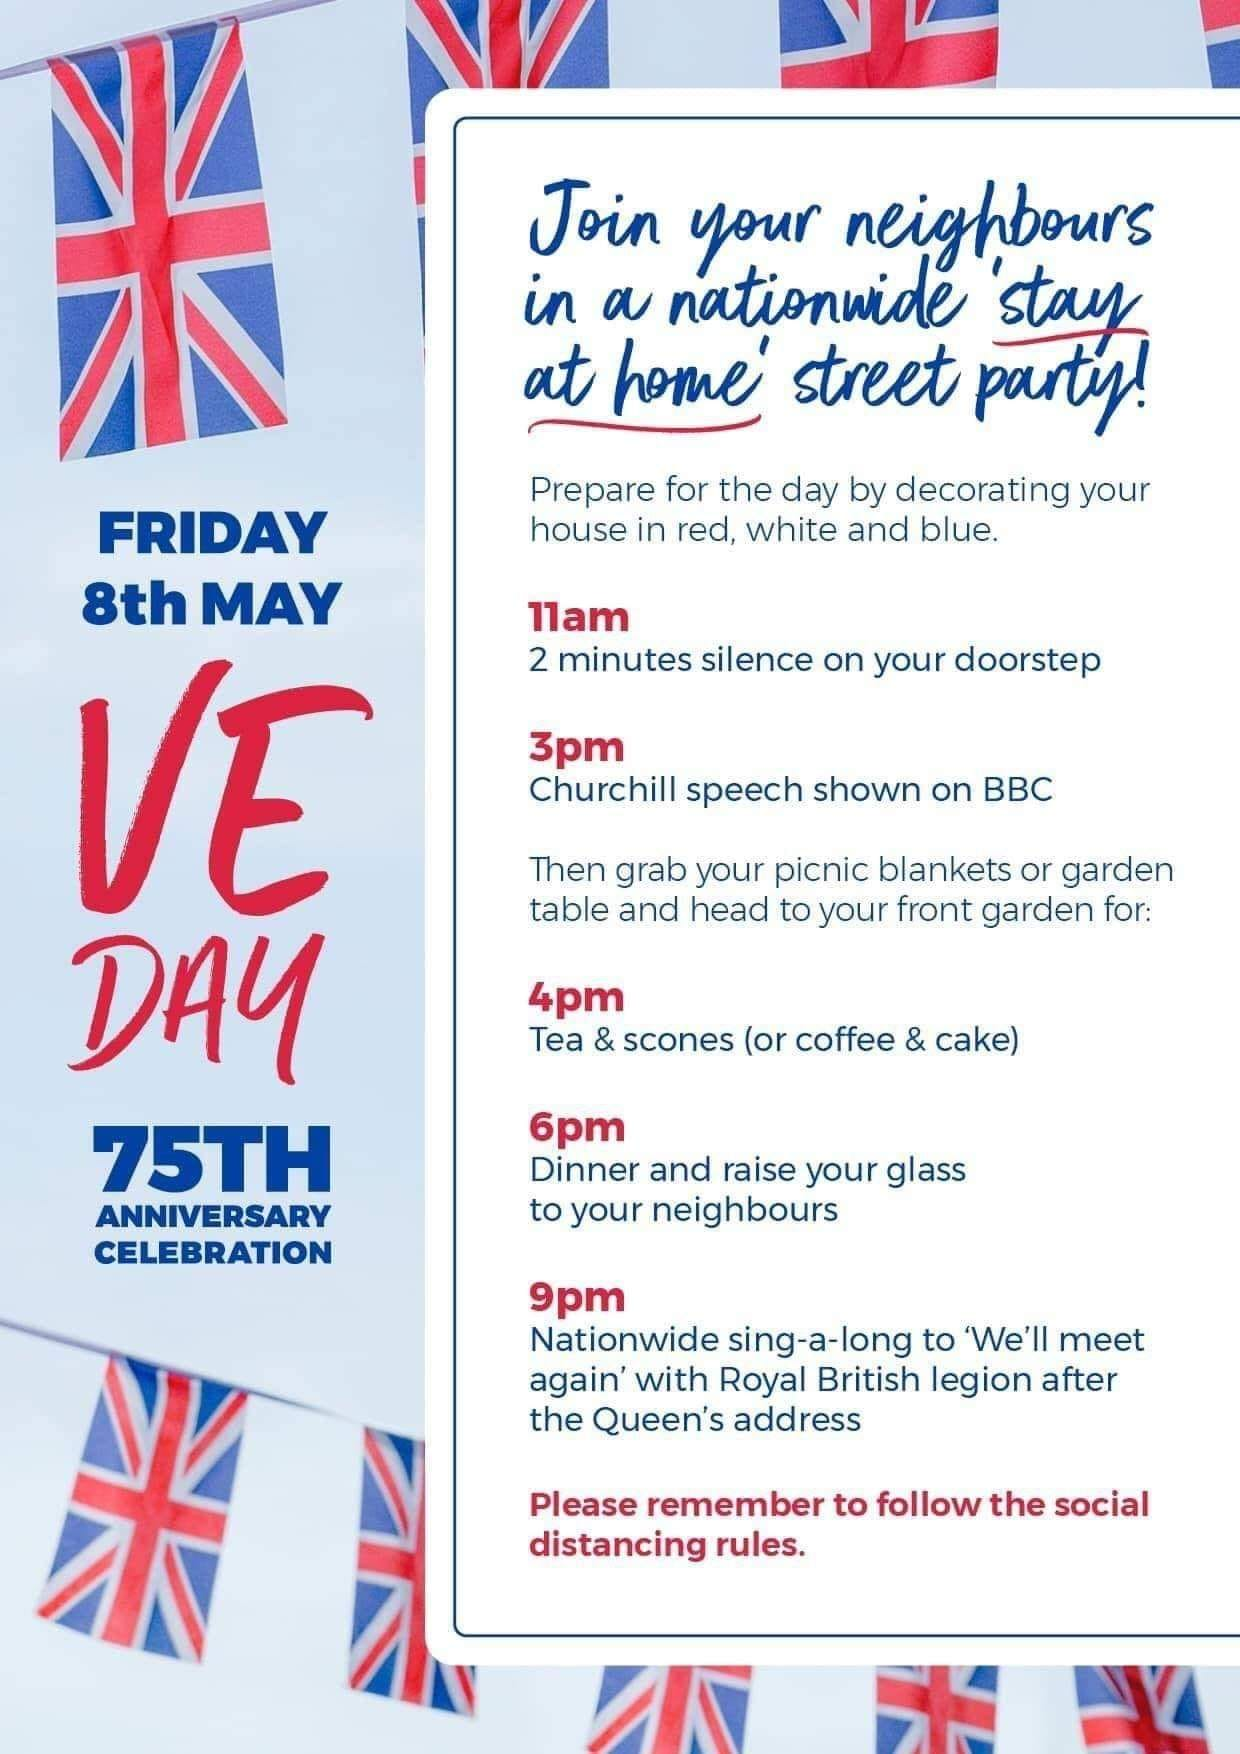 Ve Day 70th anniversary poster